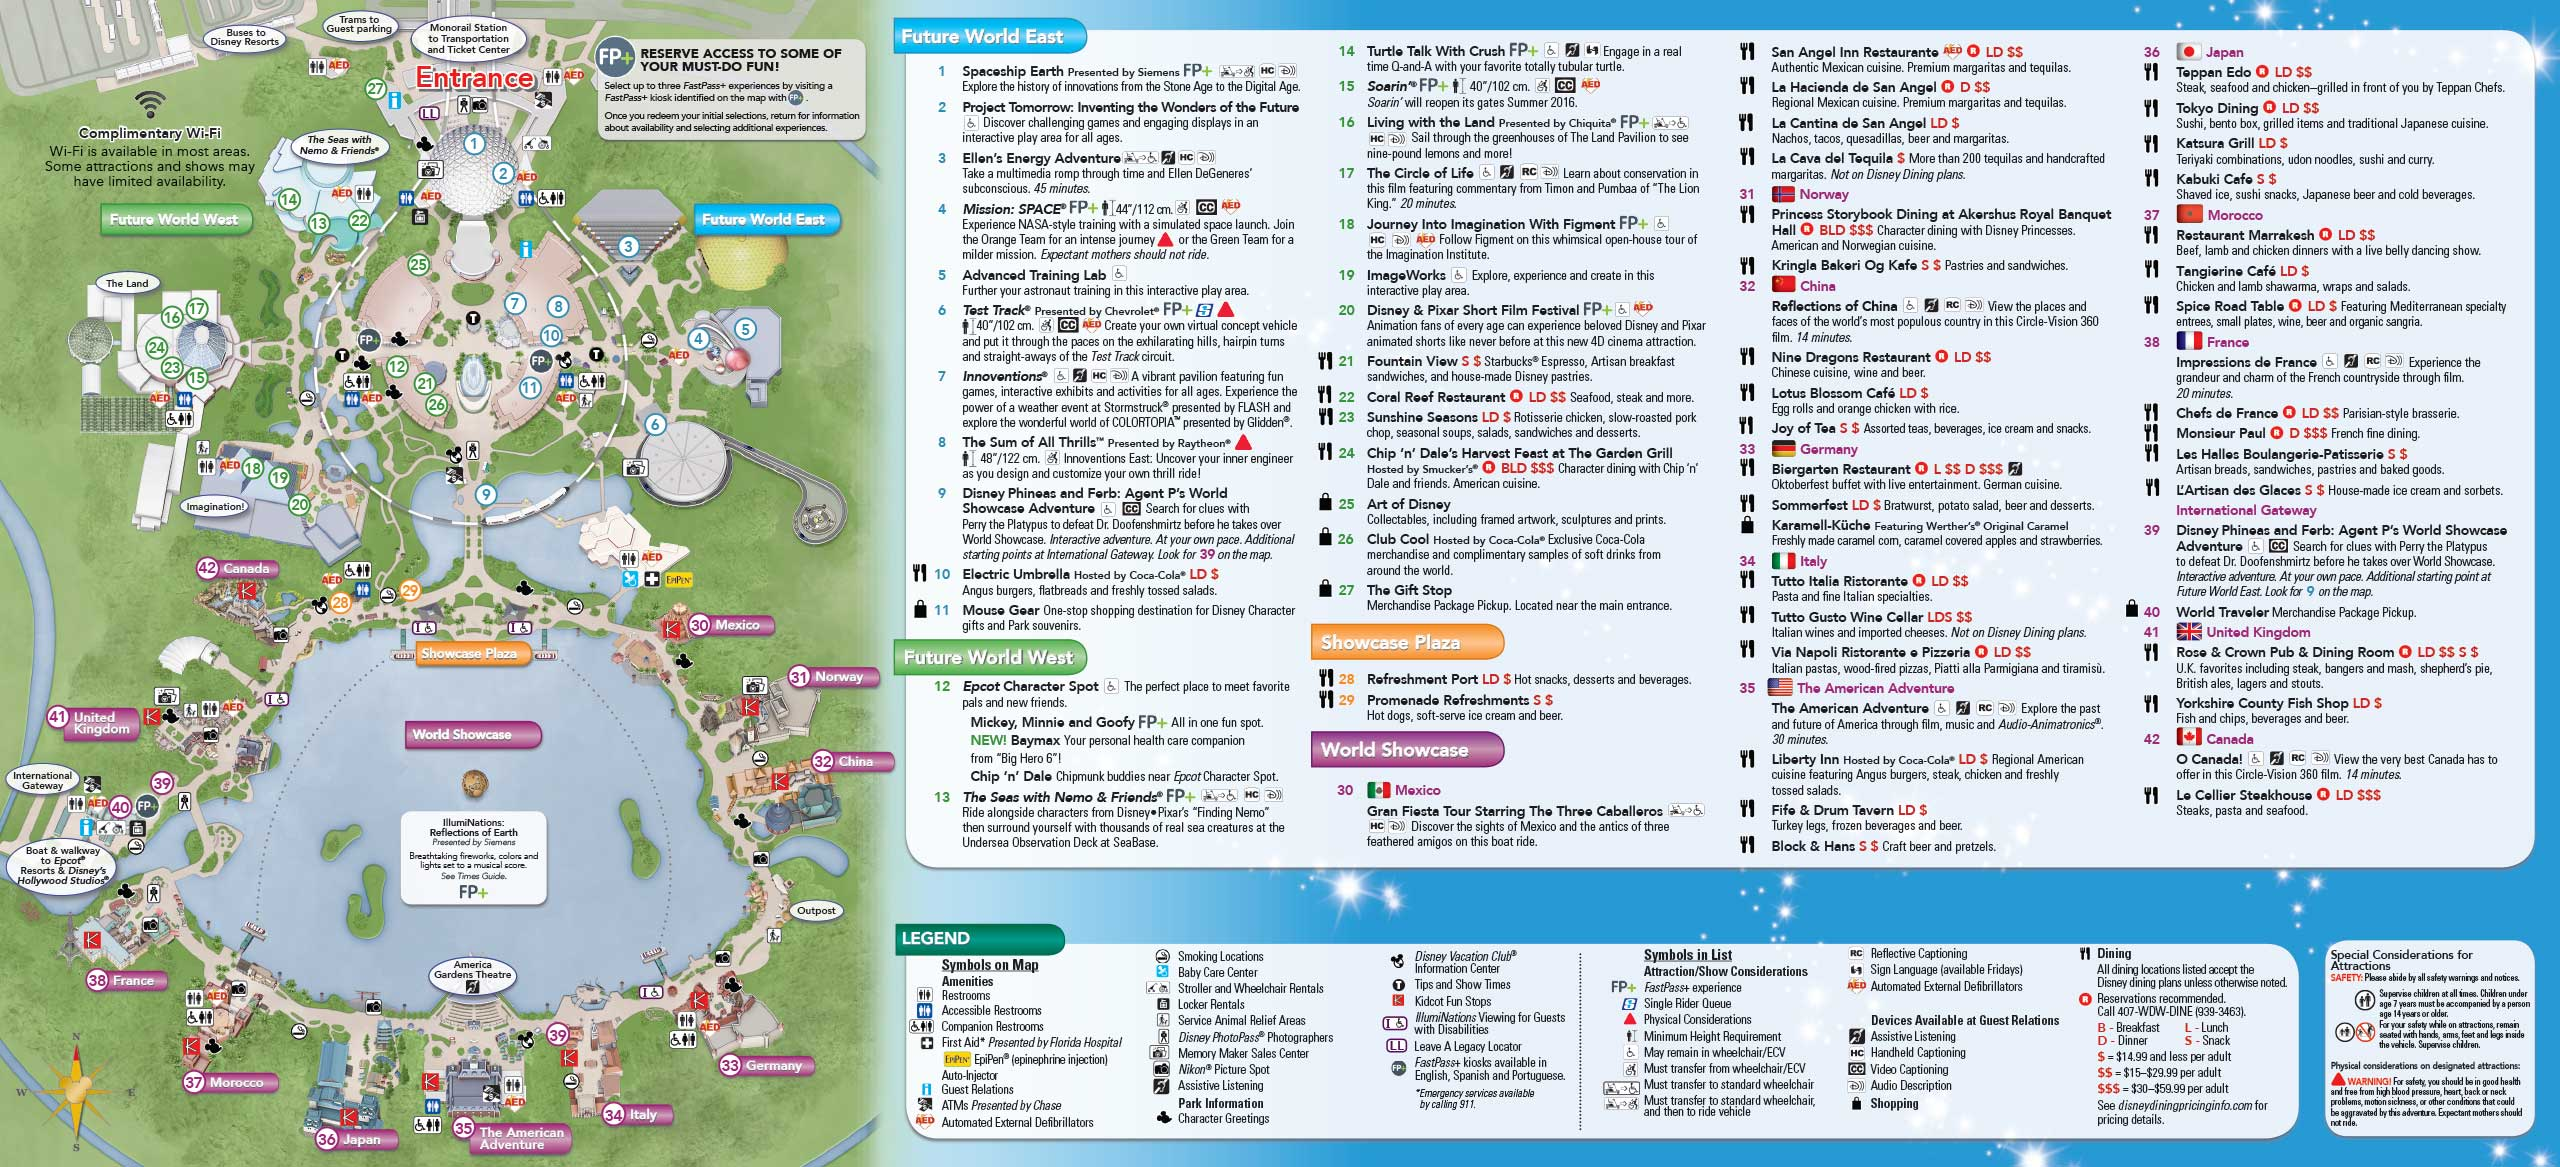 January 2016 Walt Disney World Park Maps  Photo 1 of 12